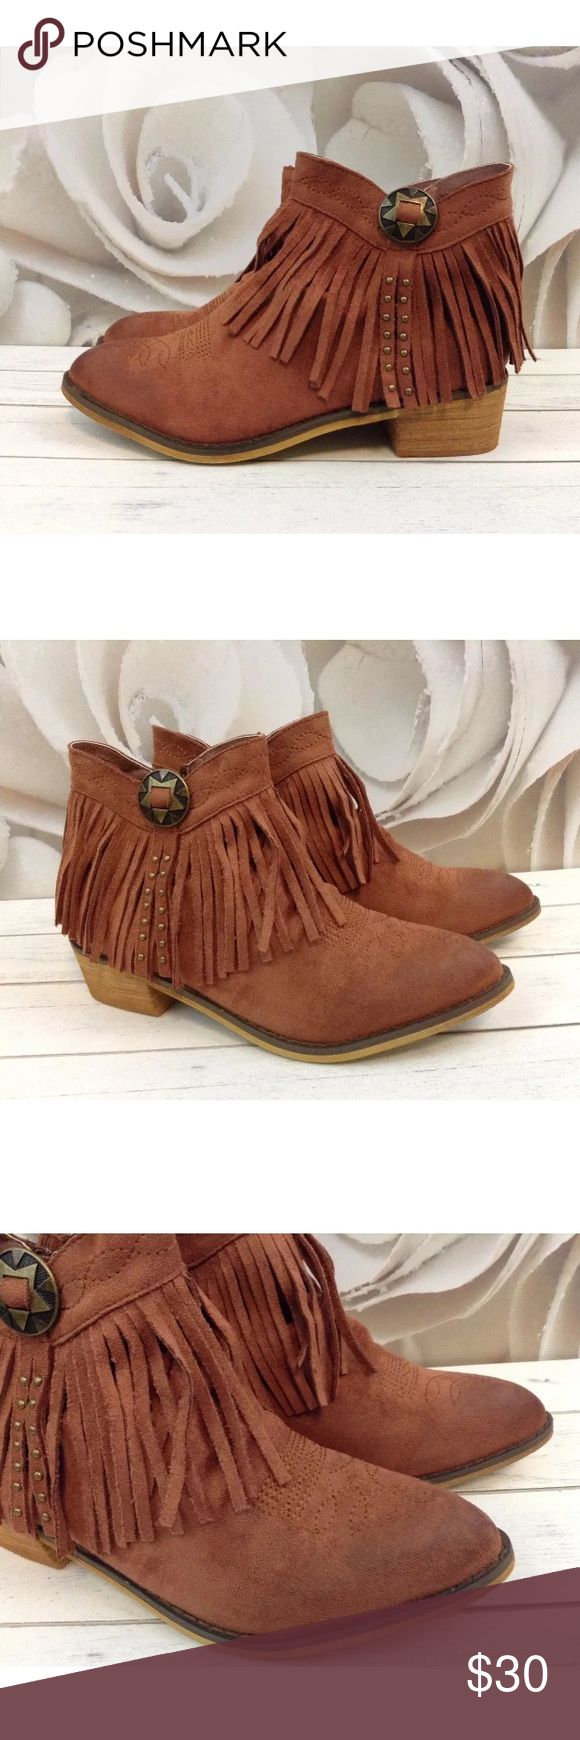 Mi.iM Thea Copper Fringe Ankle Boots / Booties 9 Mi.iM New in box Thea Copper Fringe Ankle Boots / Booties   Thank you for shopping Charlie Birdie's!!  Brand: Mi.iM Style:  Ankle Boots Condition:  New!! Fabric:  Synthetic Materials Size:  9.0 Colors/Patterns:  Copper Brown / Solid Mi.iM Shoes Ankle Boots & Booties